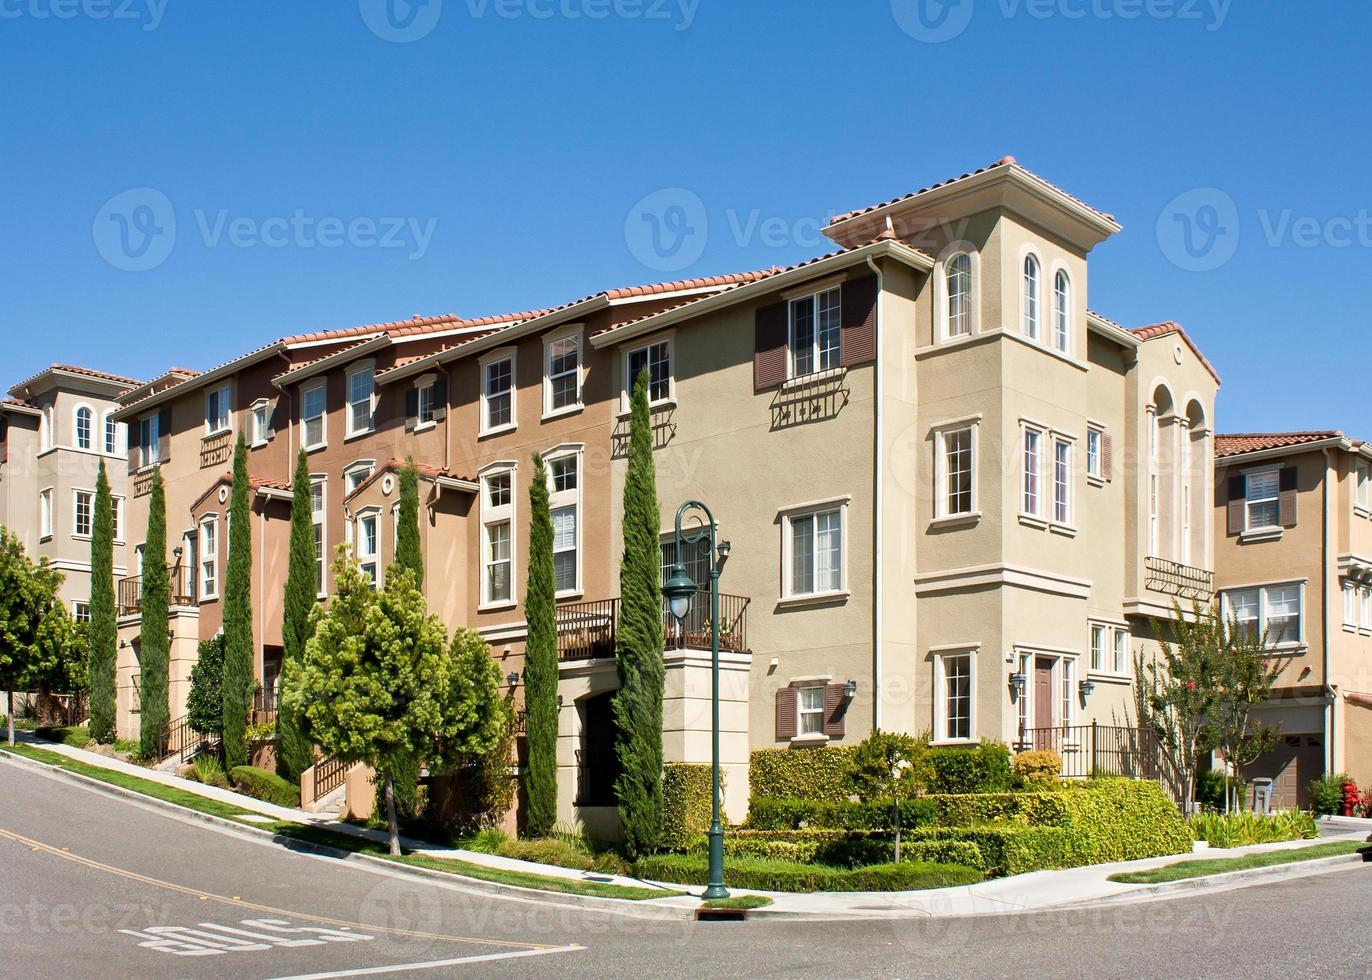 Modern town homes with street corner photo